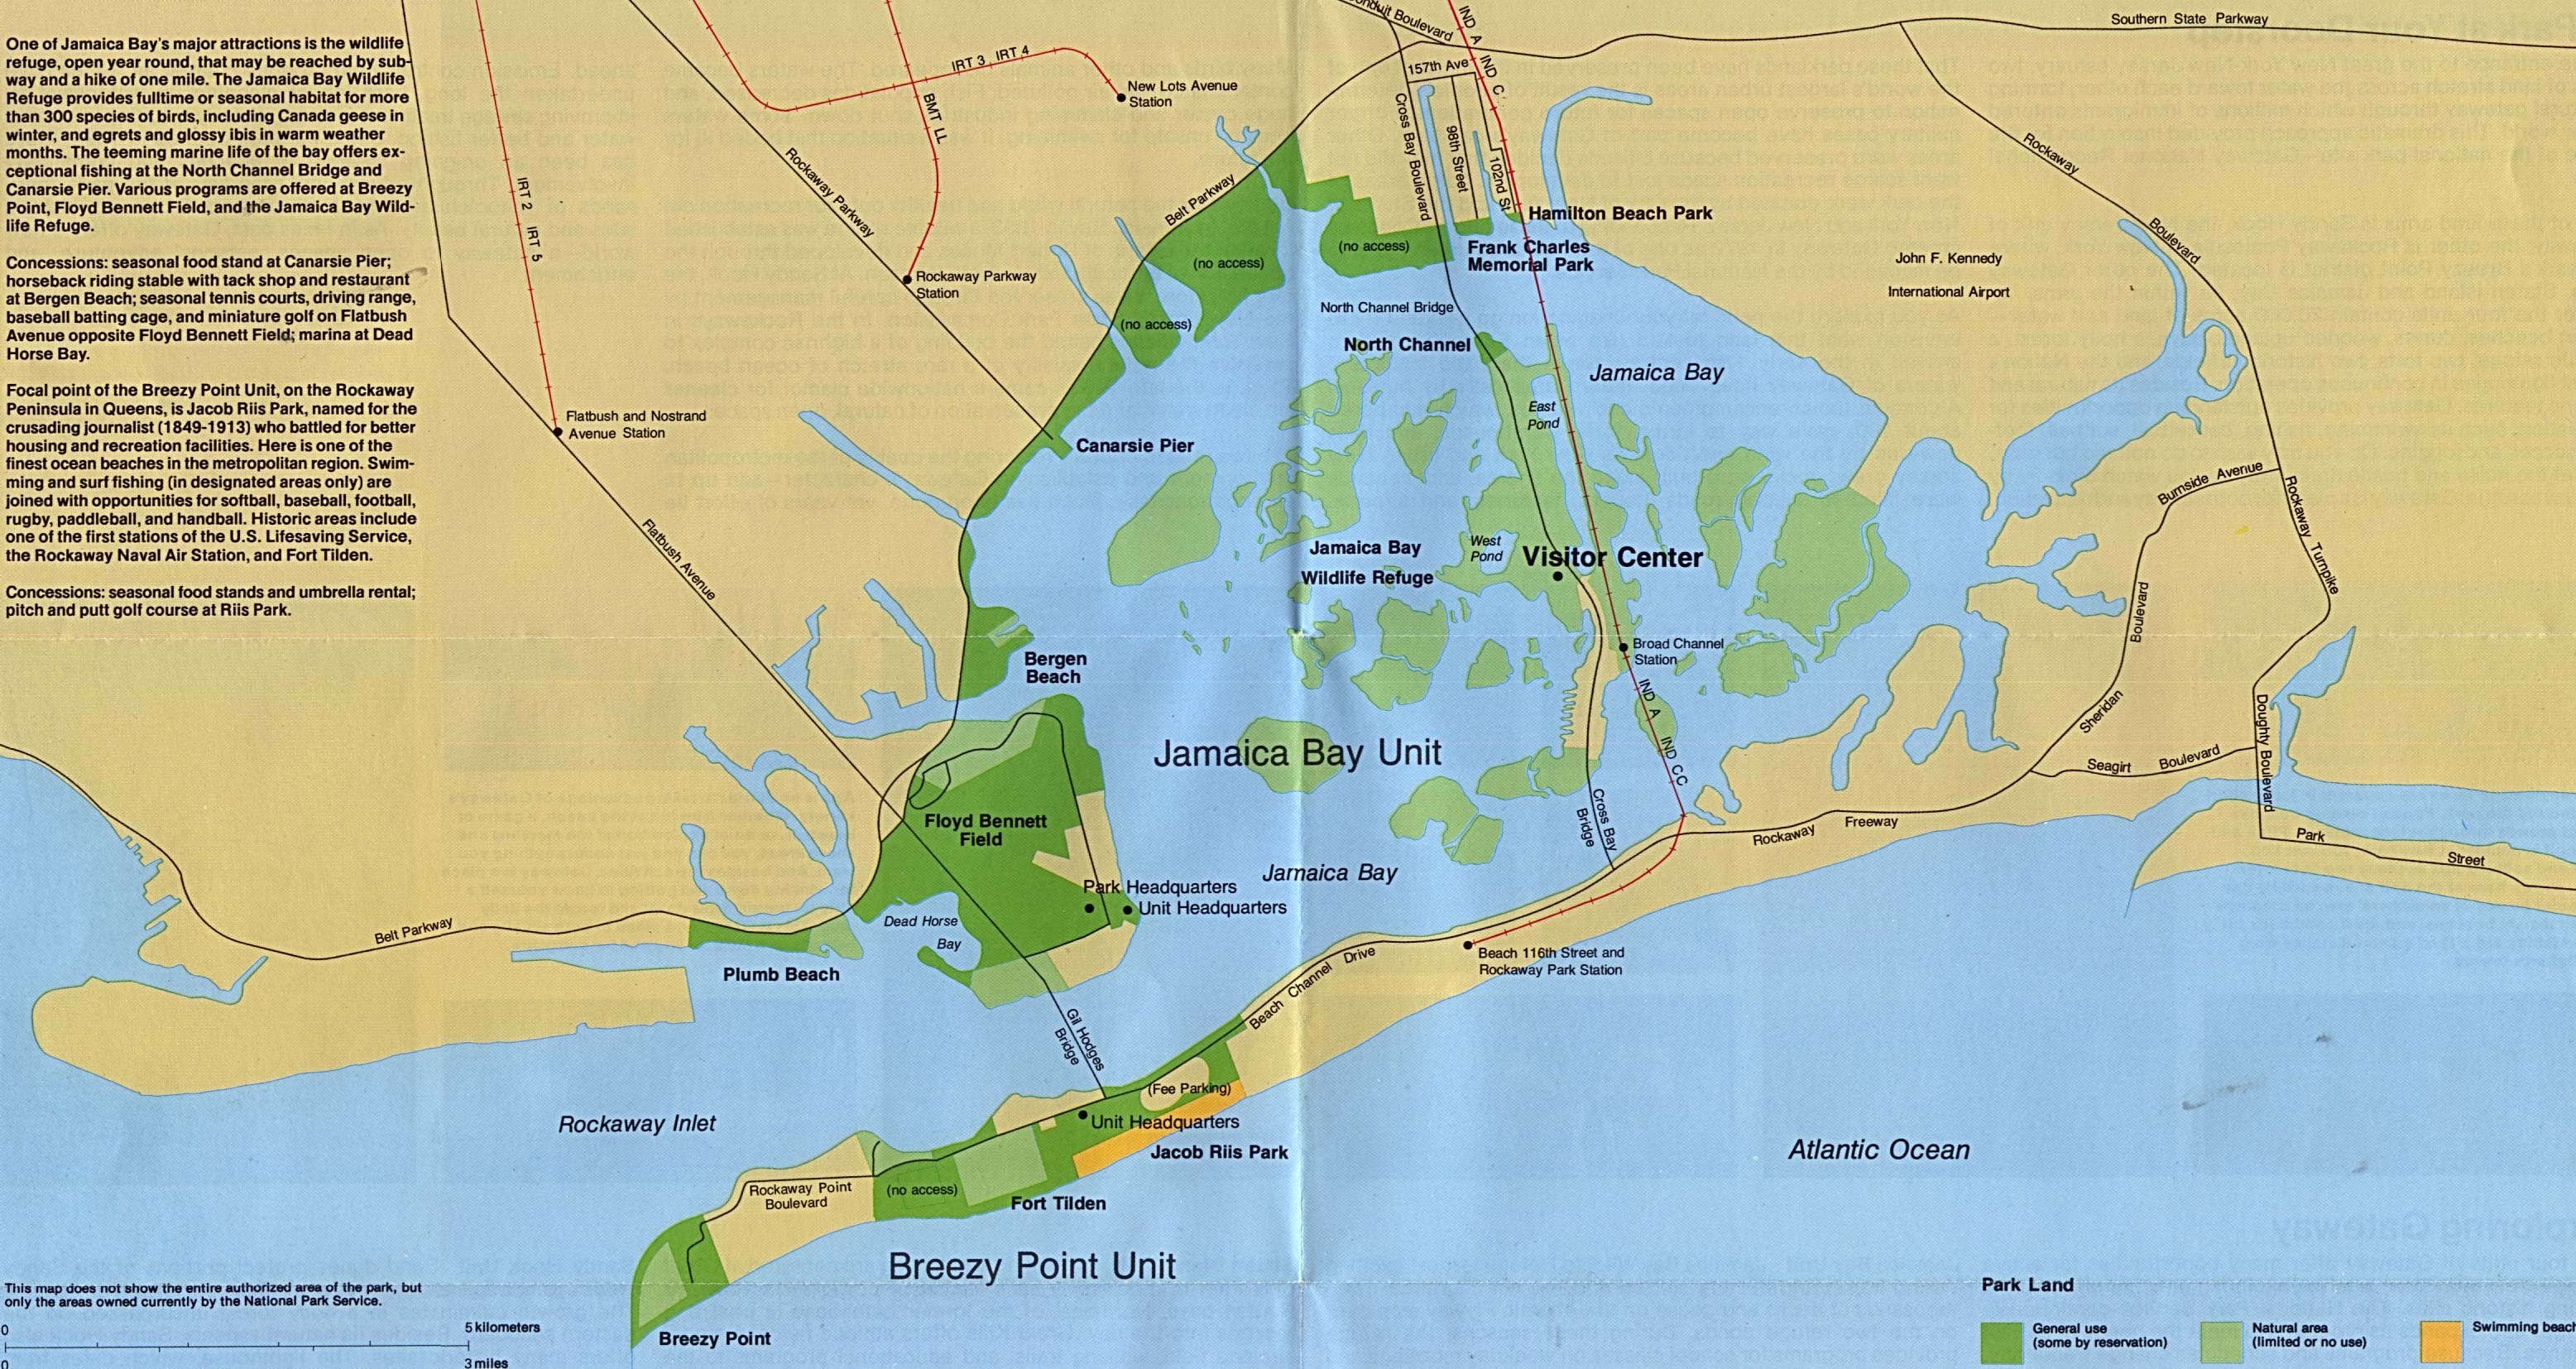 Mapa Detallado de Jamaica Bay y Breezy Point, Área Nacional de Recreación Gateway, Nueva York / Nueva Jersey, Estados Unidos